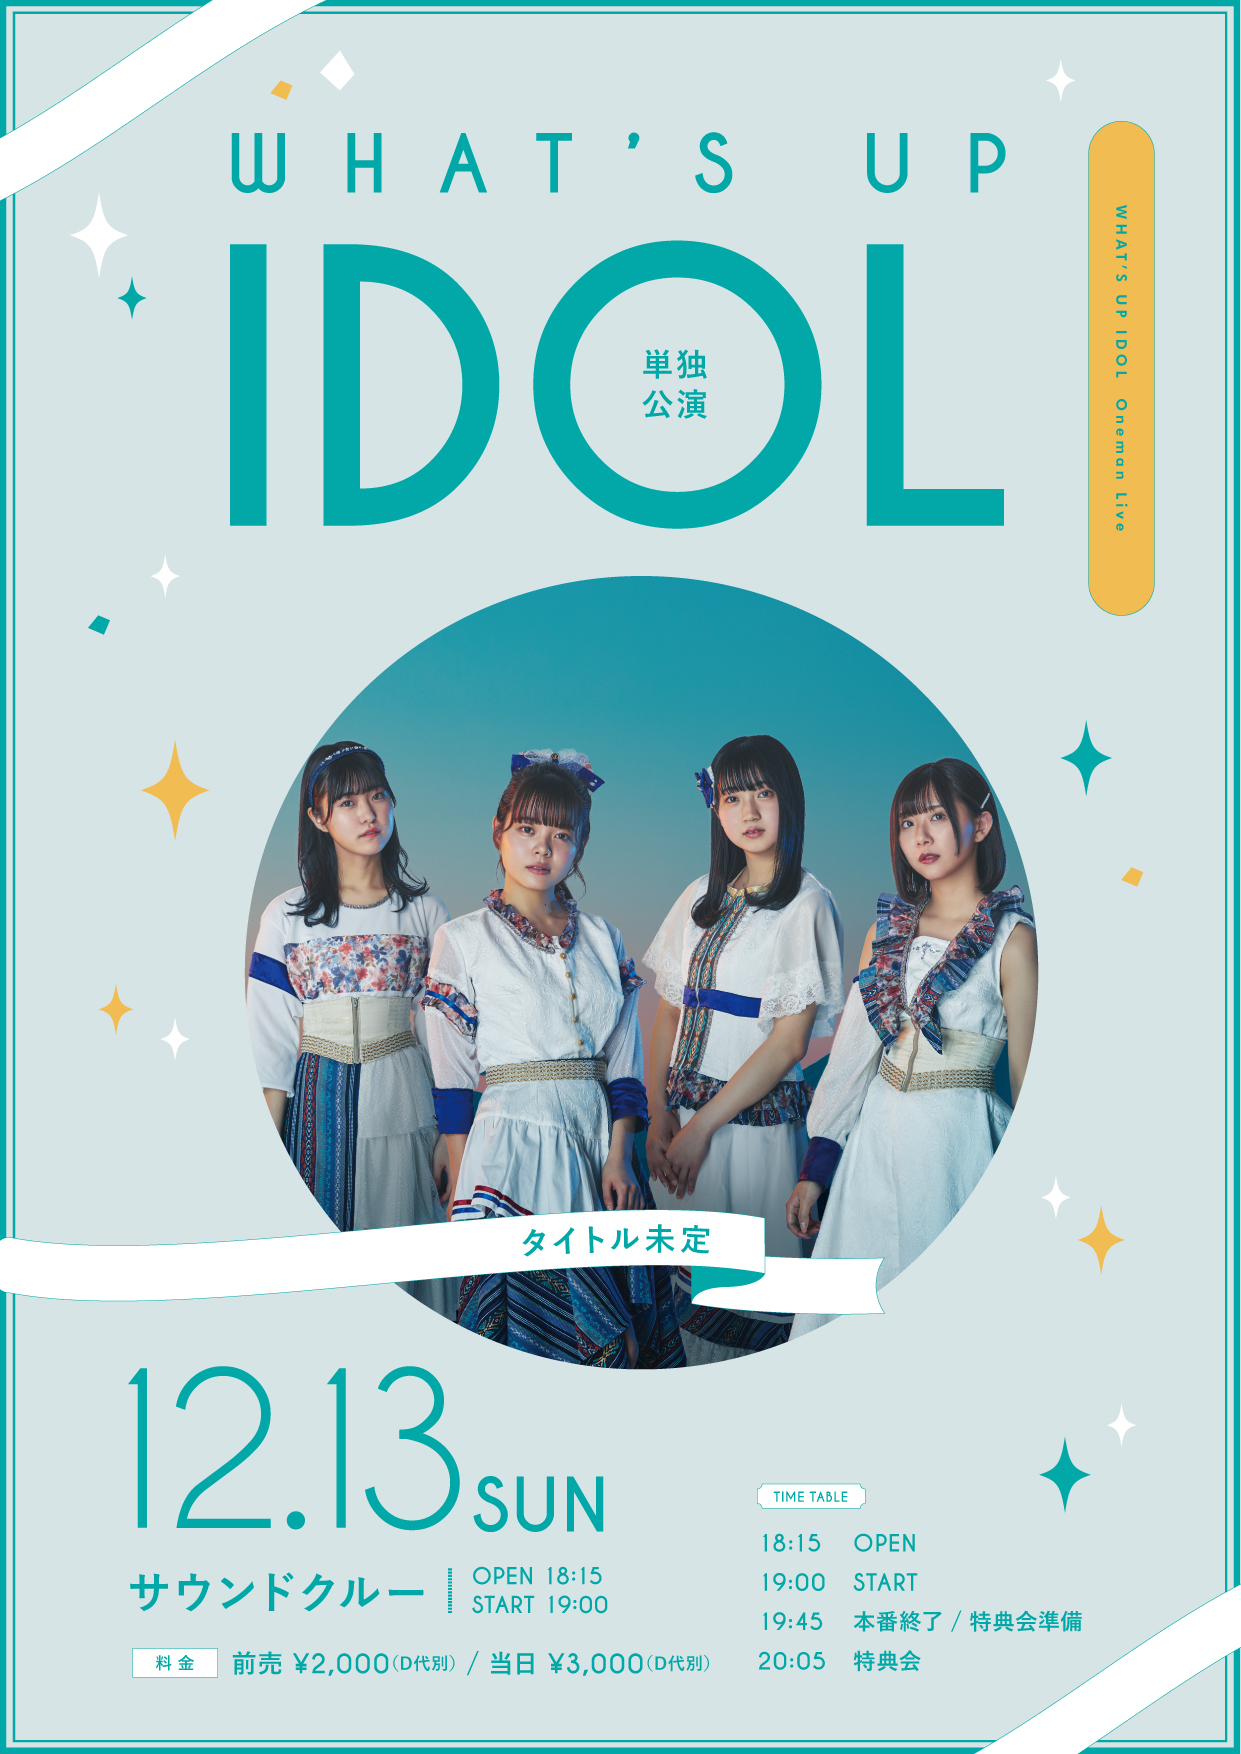 WHAT'S UP IDOL 単独公演